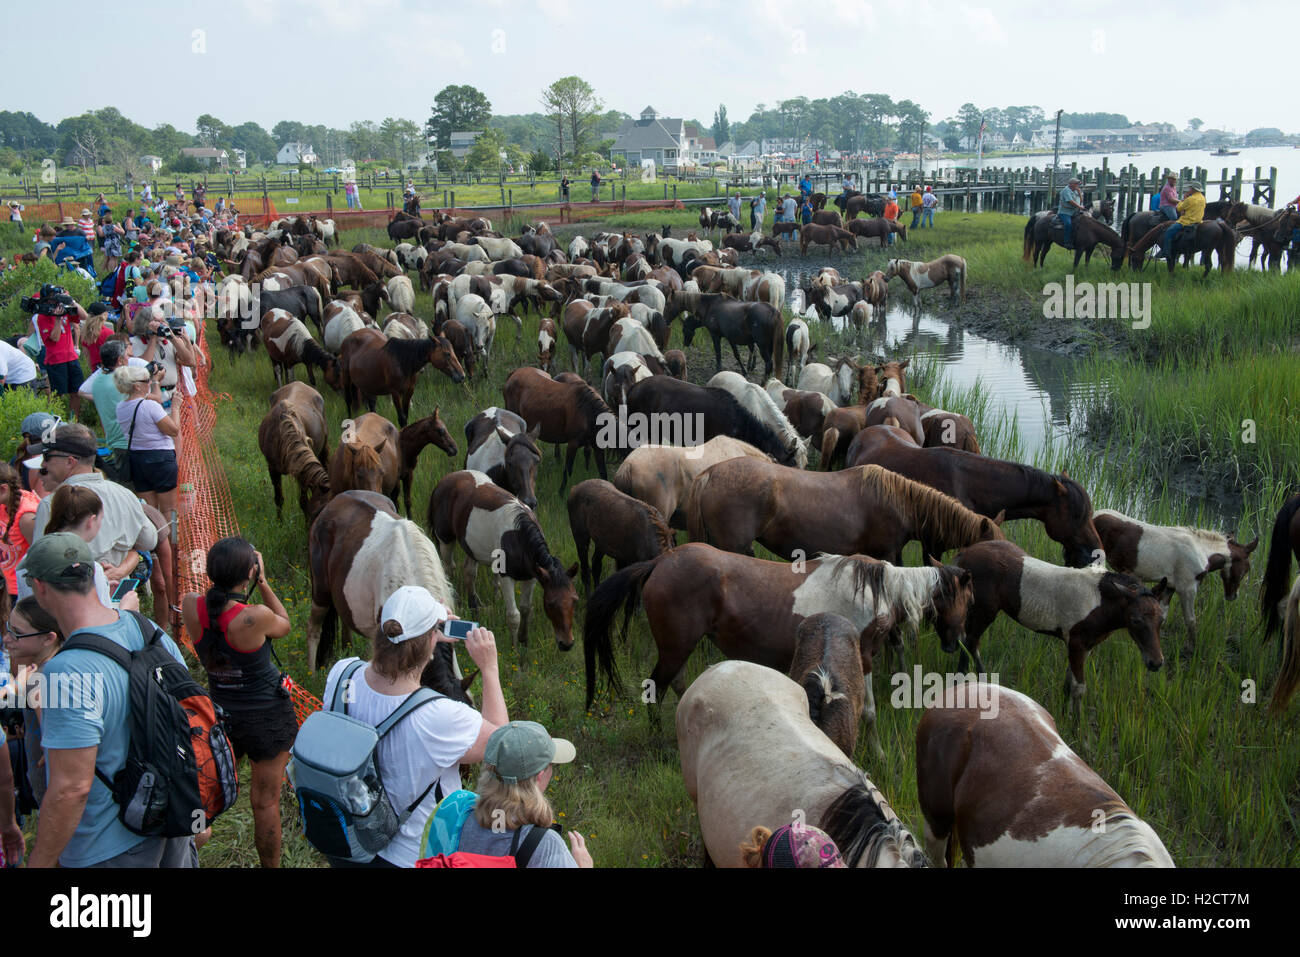 Spectators watch as a herd of wild ponies graze on grass in a fenced corral near the beach after after completing - Stock Image